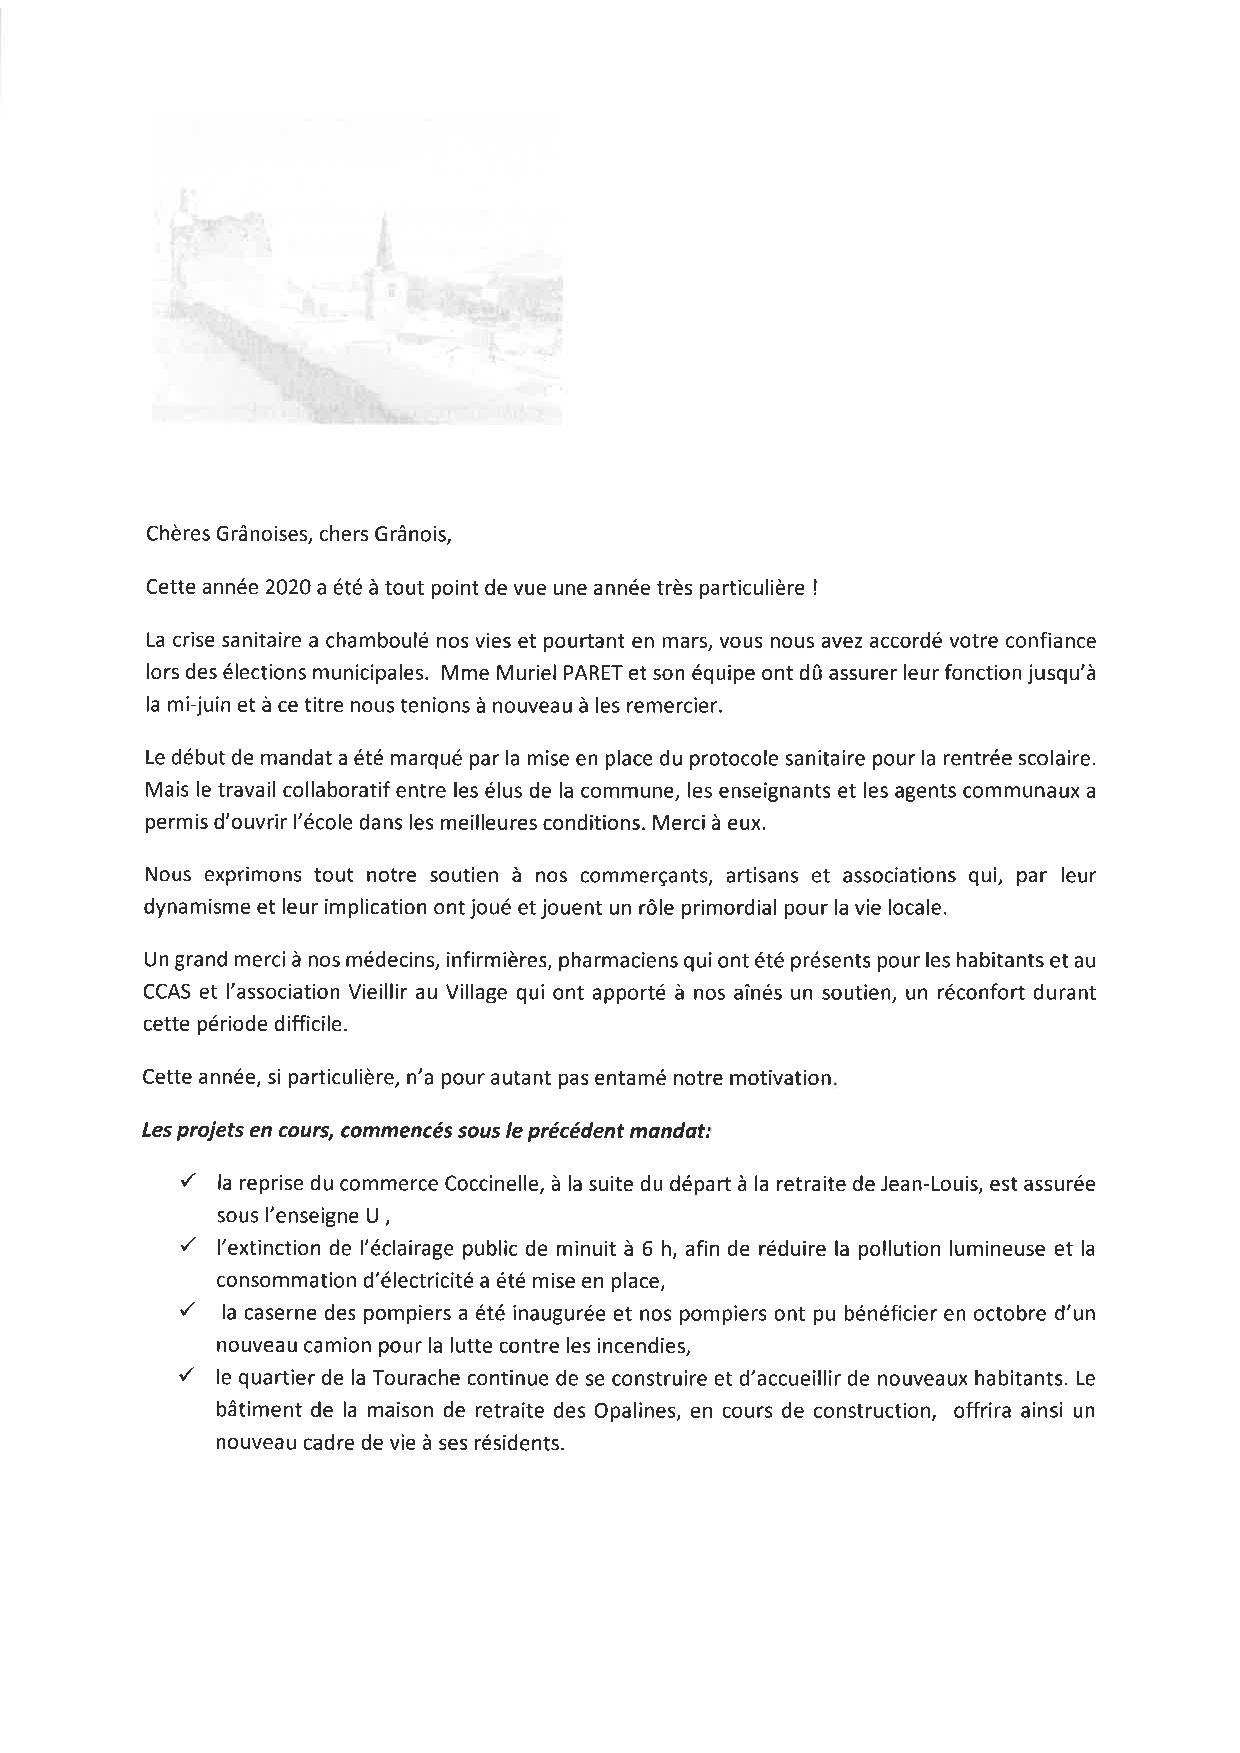 VOEUX ECRITS-page-001.jpg